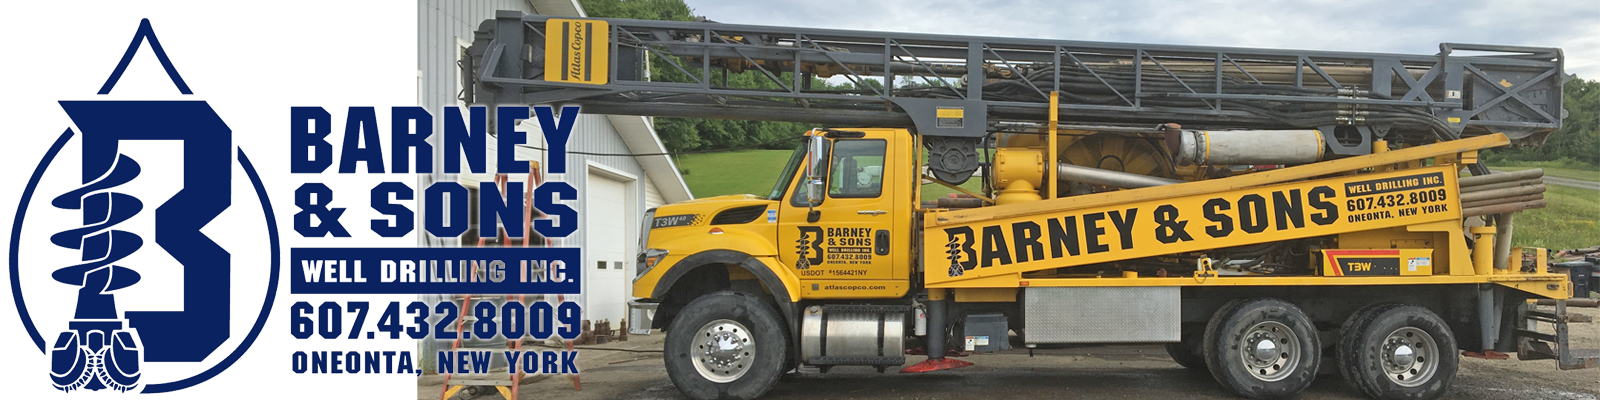 About Barney and Sons Well Drilling, Inc